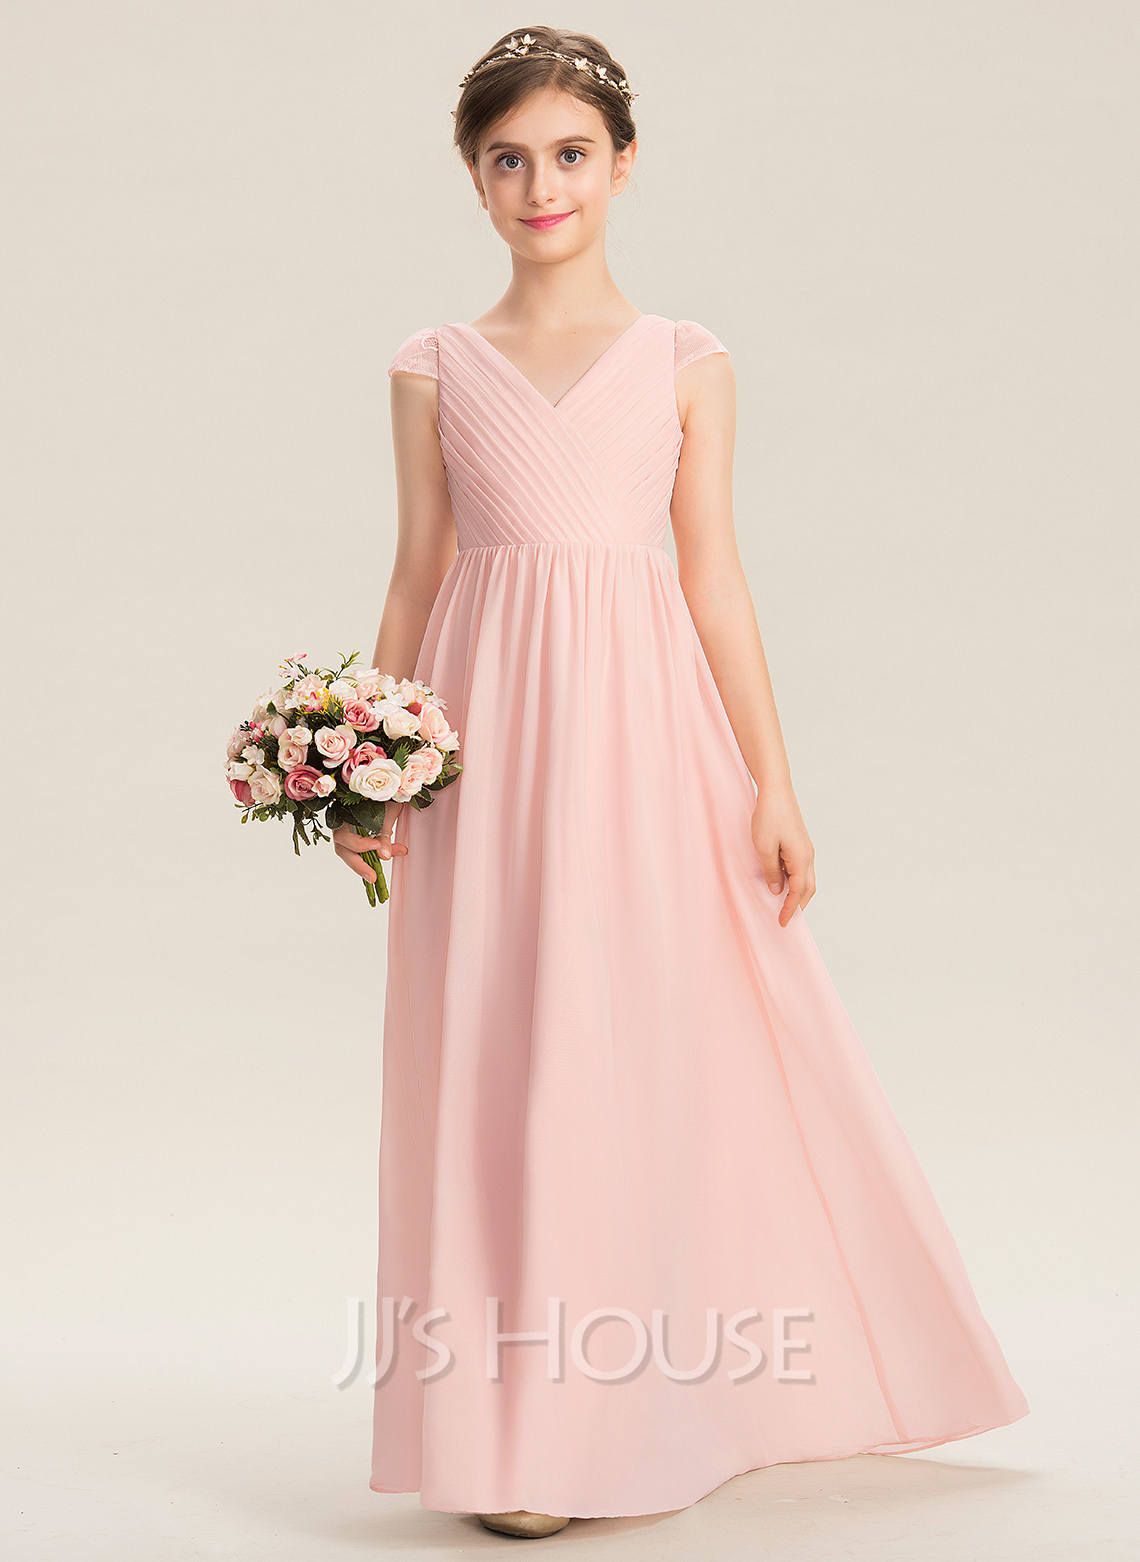 9efa29a5cb7e A-Line V-neck Floor-Length Chiffon Lace Junior Bridesmaid Dress With  Ruffle. Loading zoom